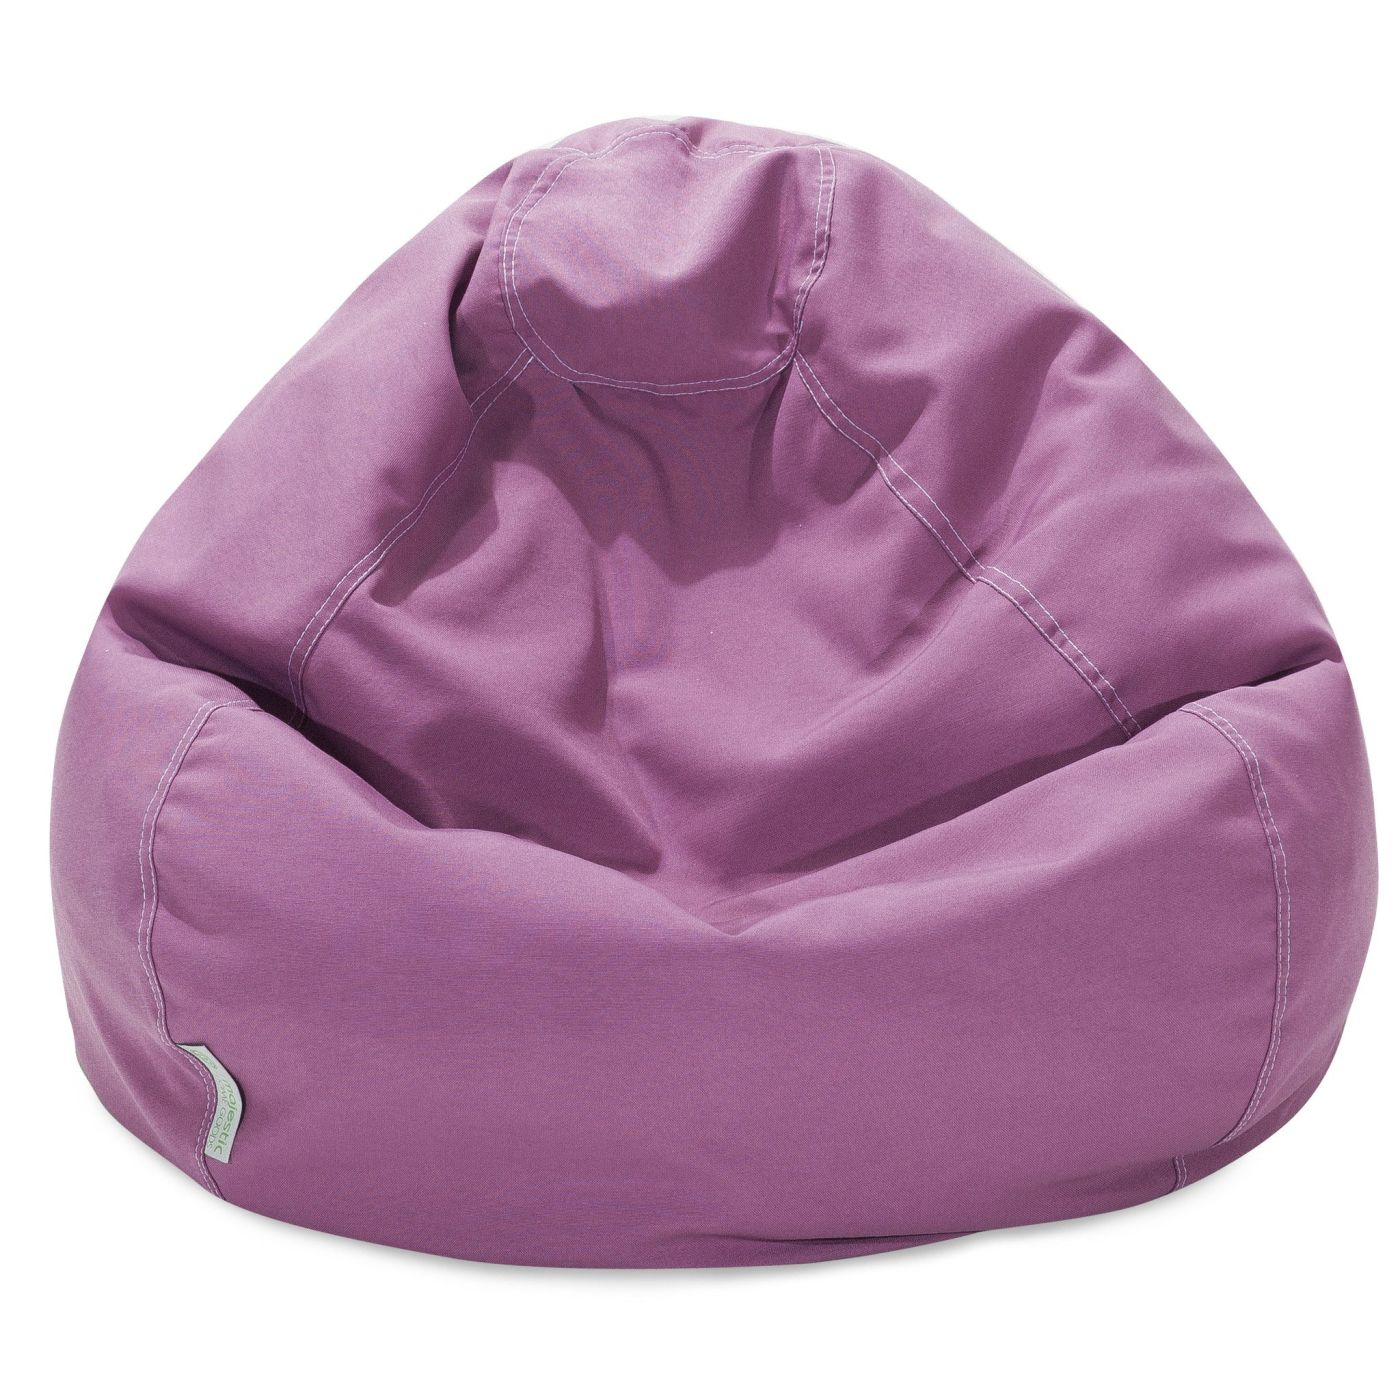 Buy Majestic Home 85907248036 Lilac Small Classic Bean Bag